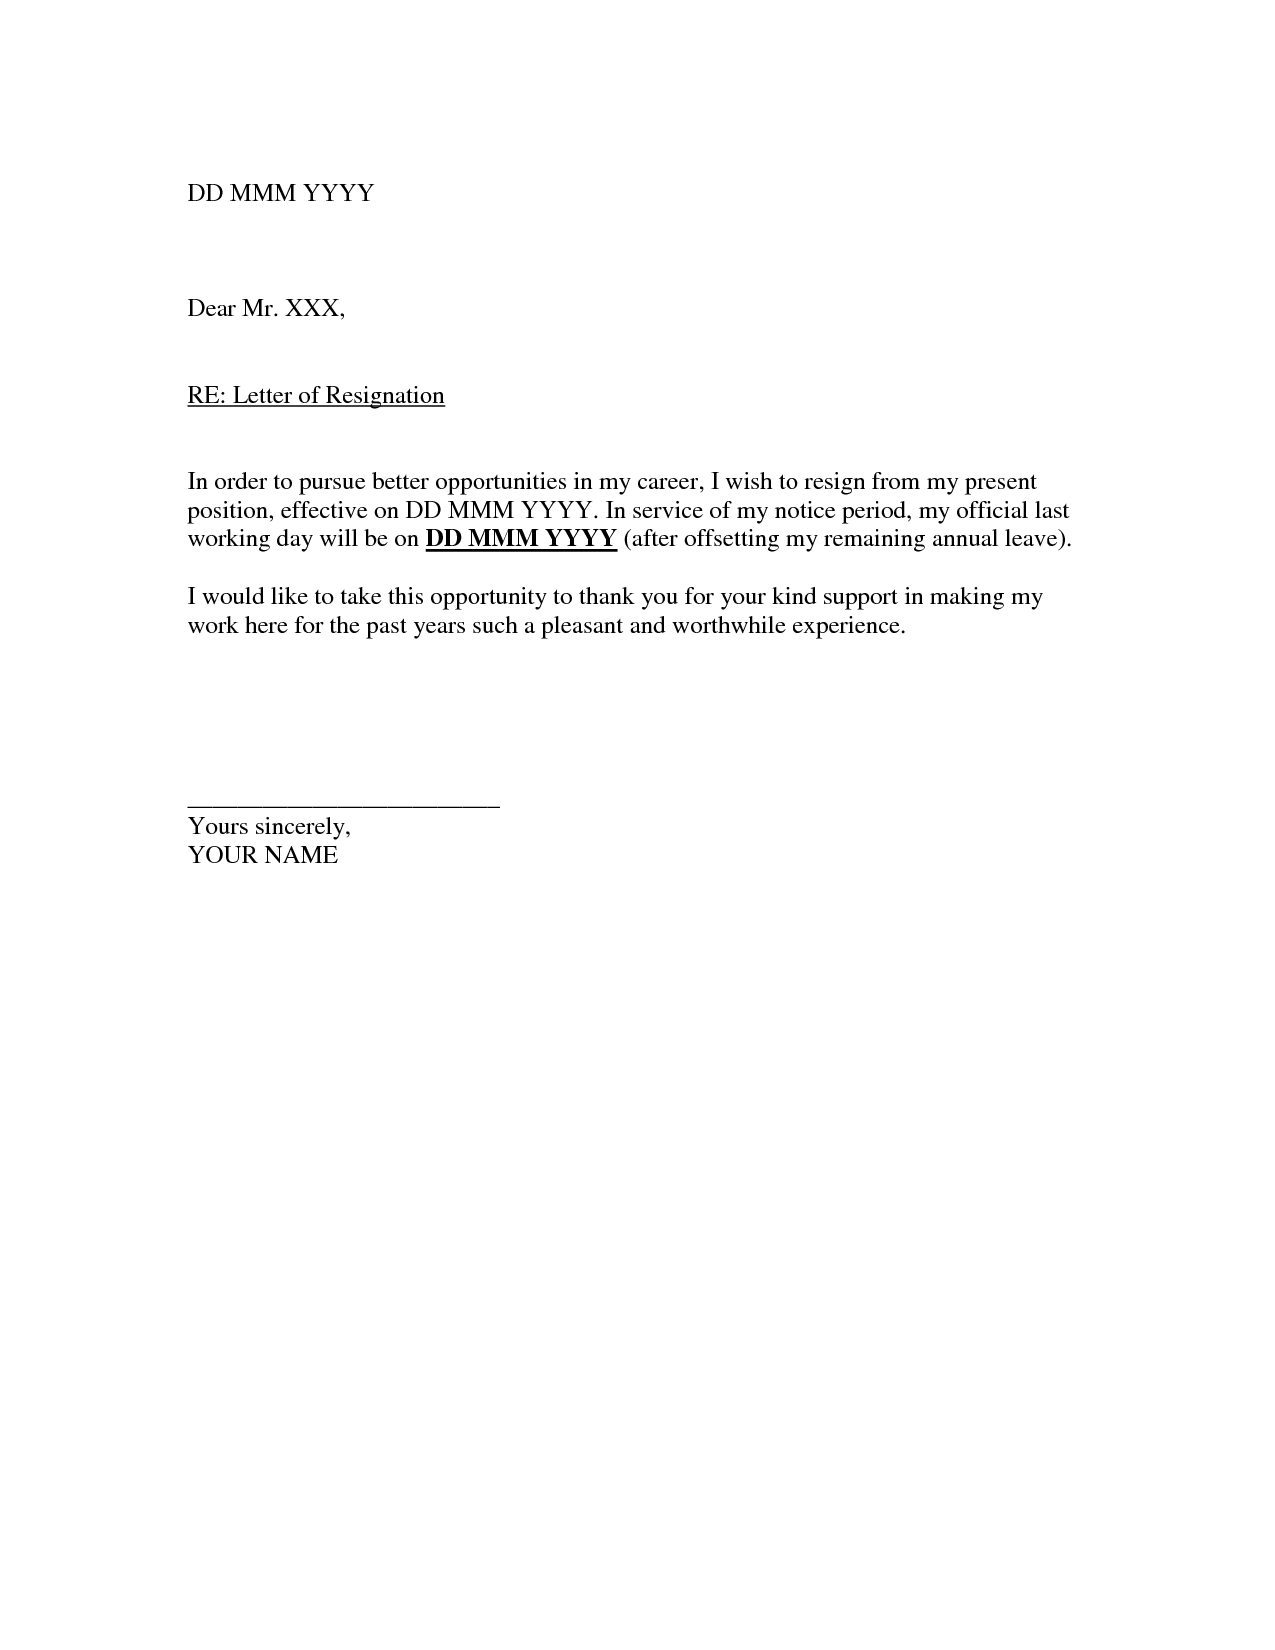 Related to resignation letter template letters of resignation templates formal resignation letter sample resignation-letter-2-week-notice